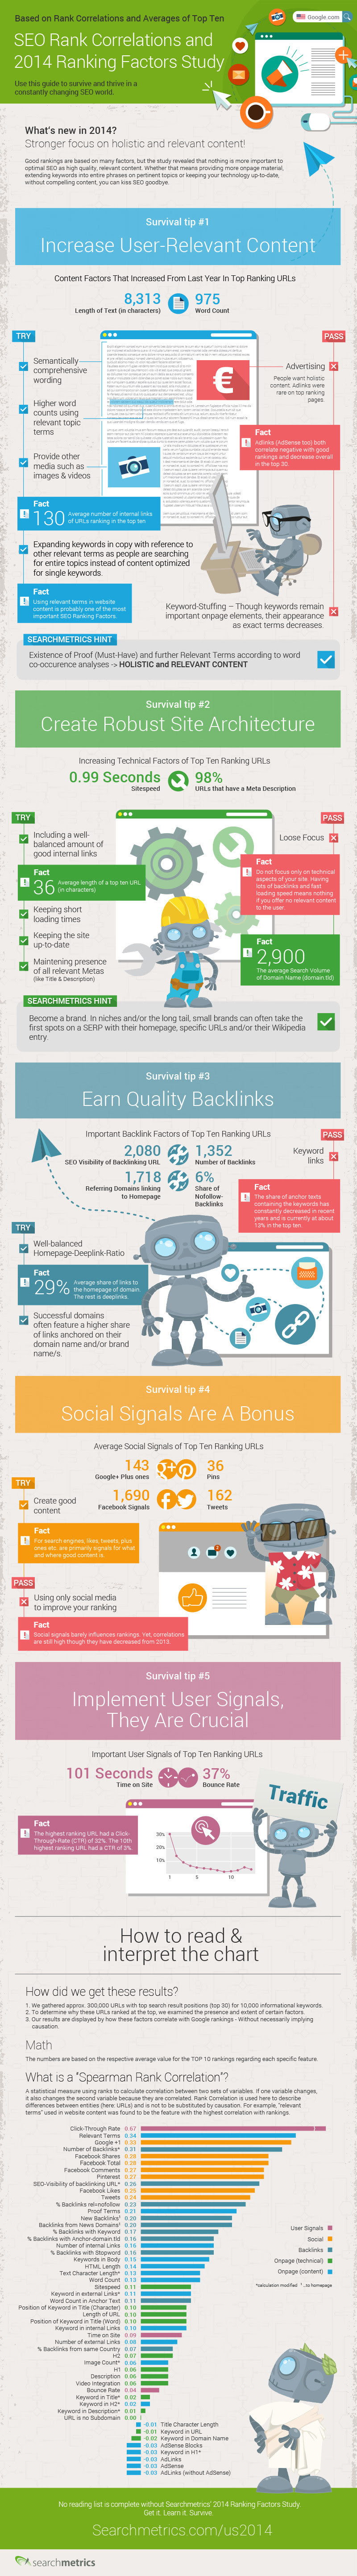 A Breakdown Of What Contributes To Your Search Engine Rankings #infographic - search engine optimization